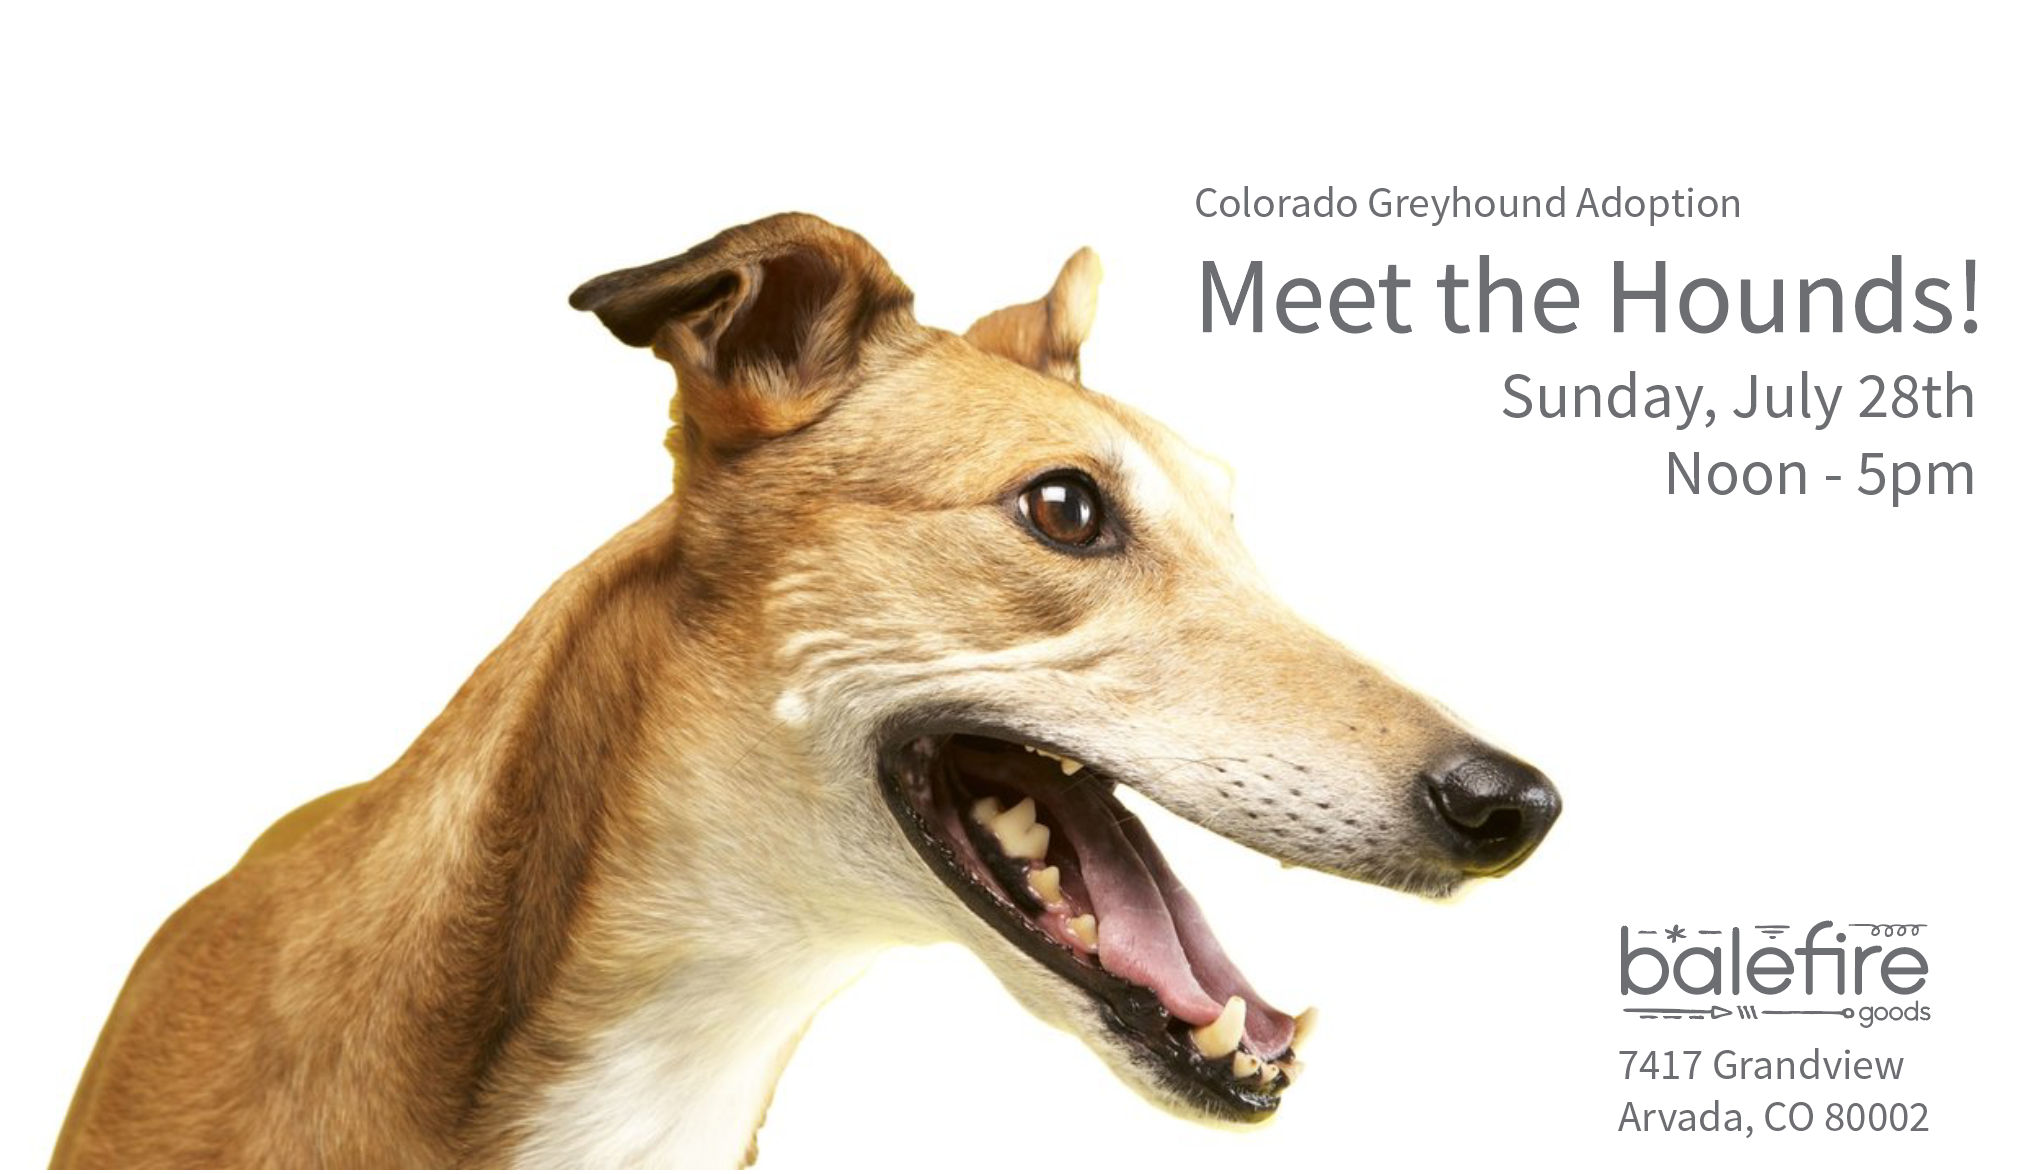 Colorado Greyhound Adoption: Meet the Hounds!